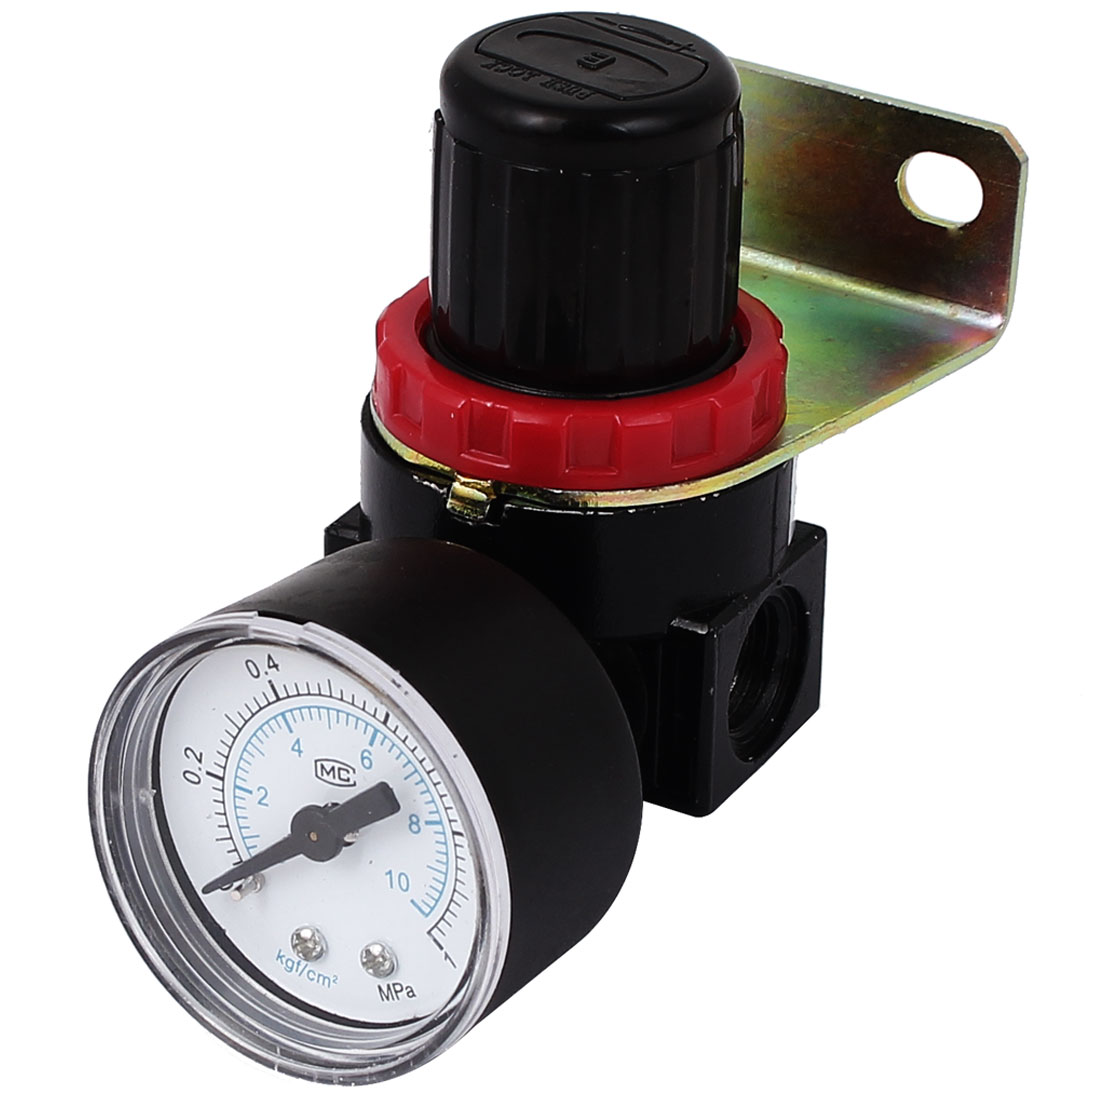 AR2000 Adjustable Pressure Gauge Air Source Filter Pneumatic Regulator Valve